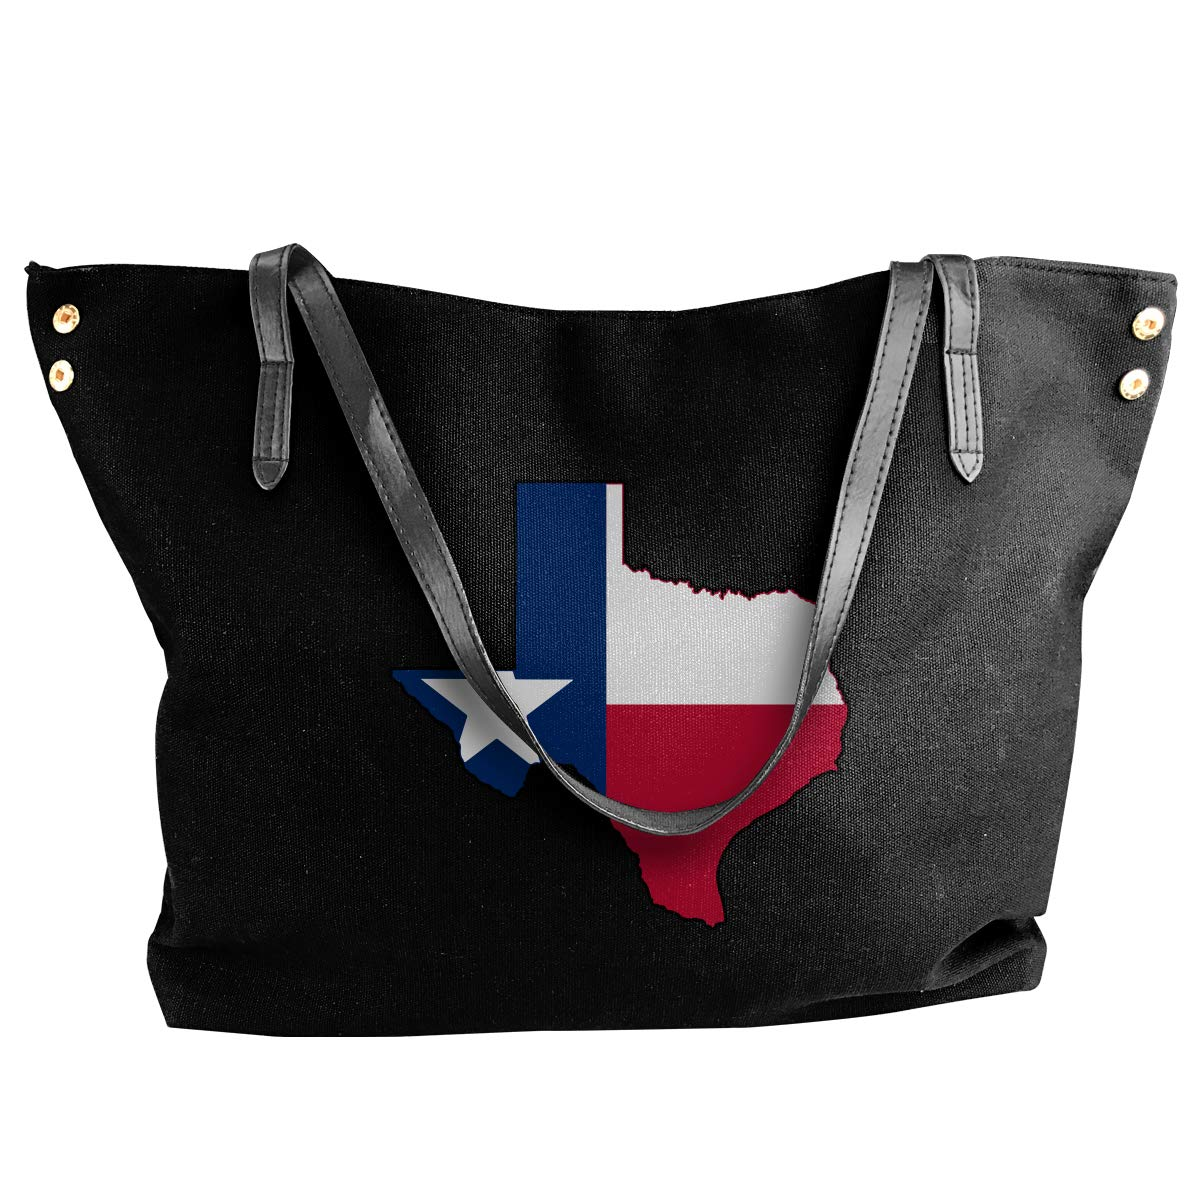 Womens Canvas Large Tote Shoulder Handbag Texas Flag Outline Clipart Large Capacity Bags